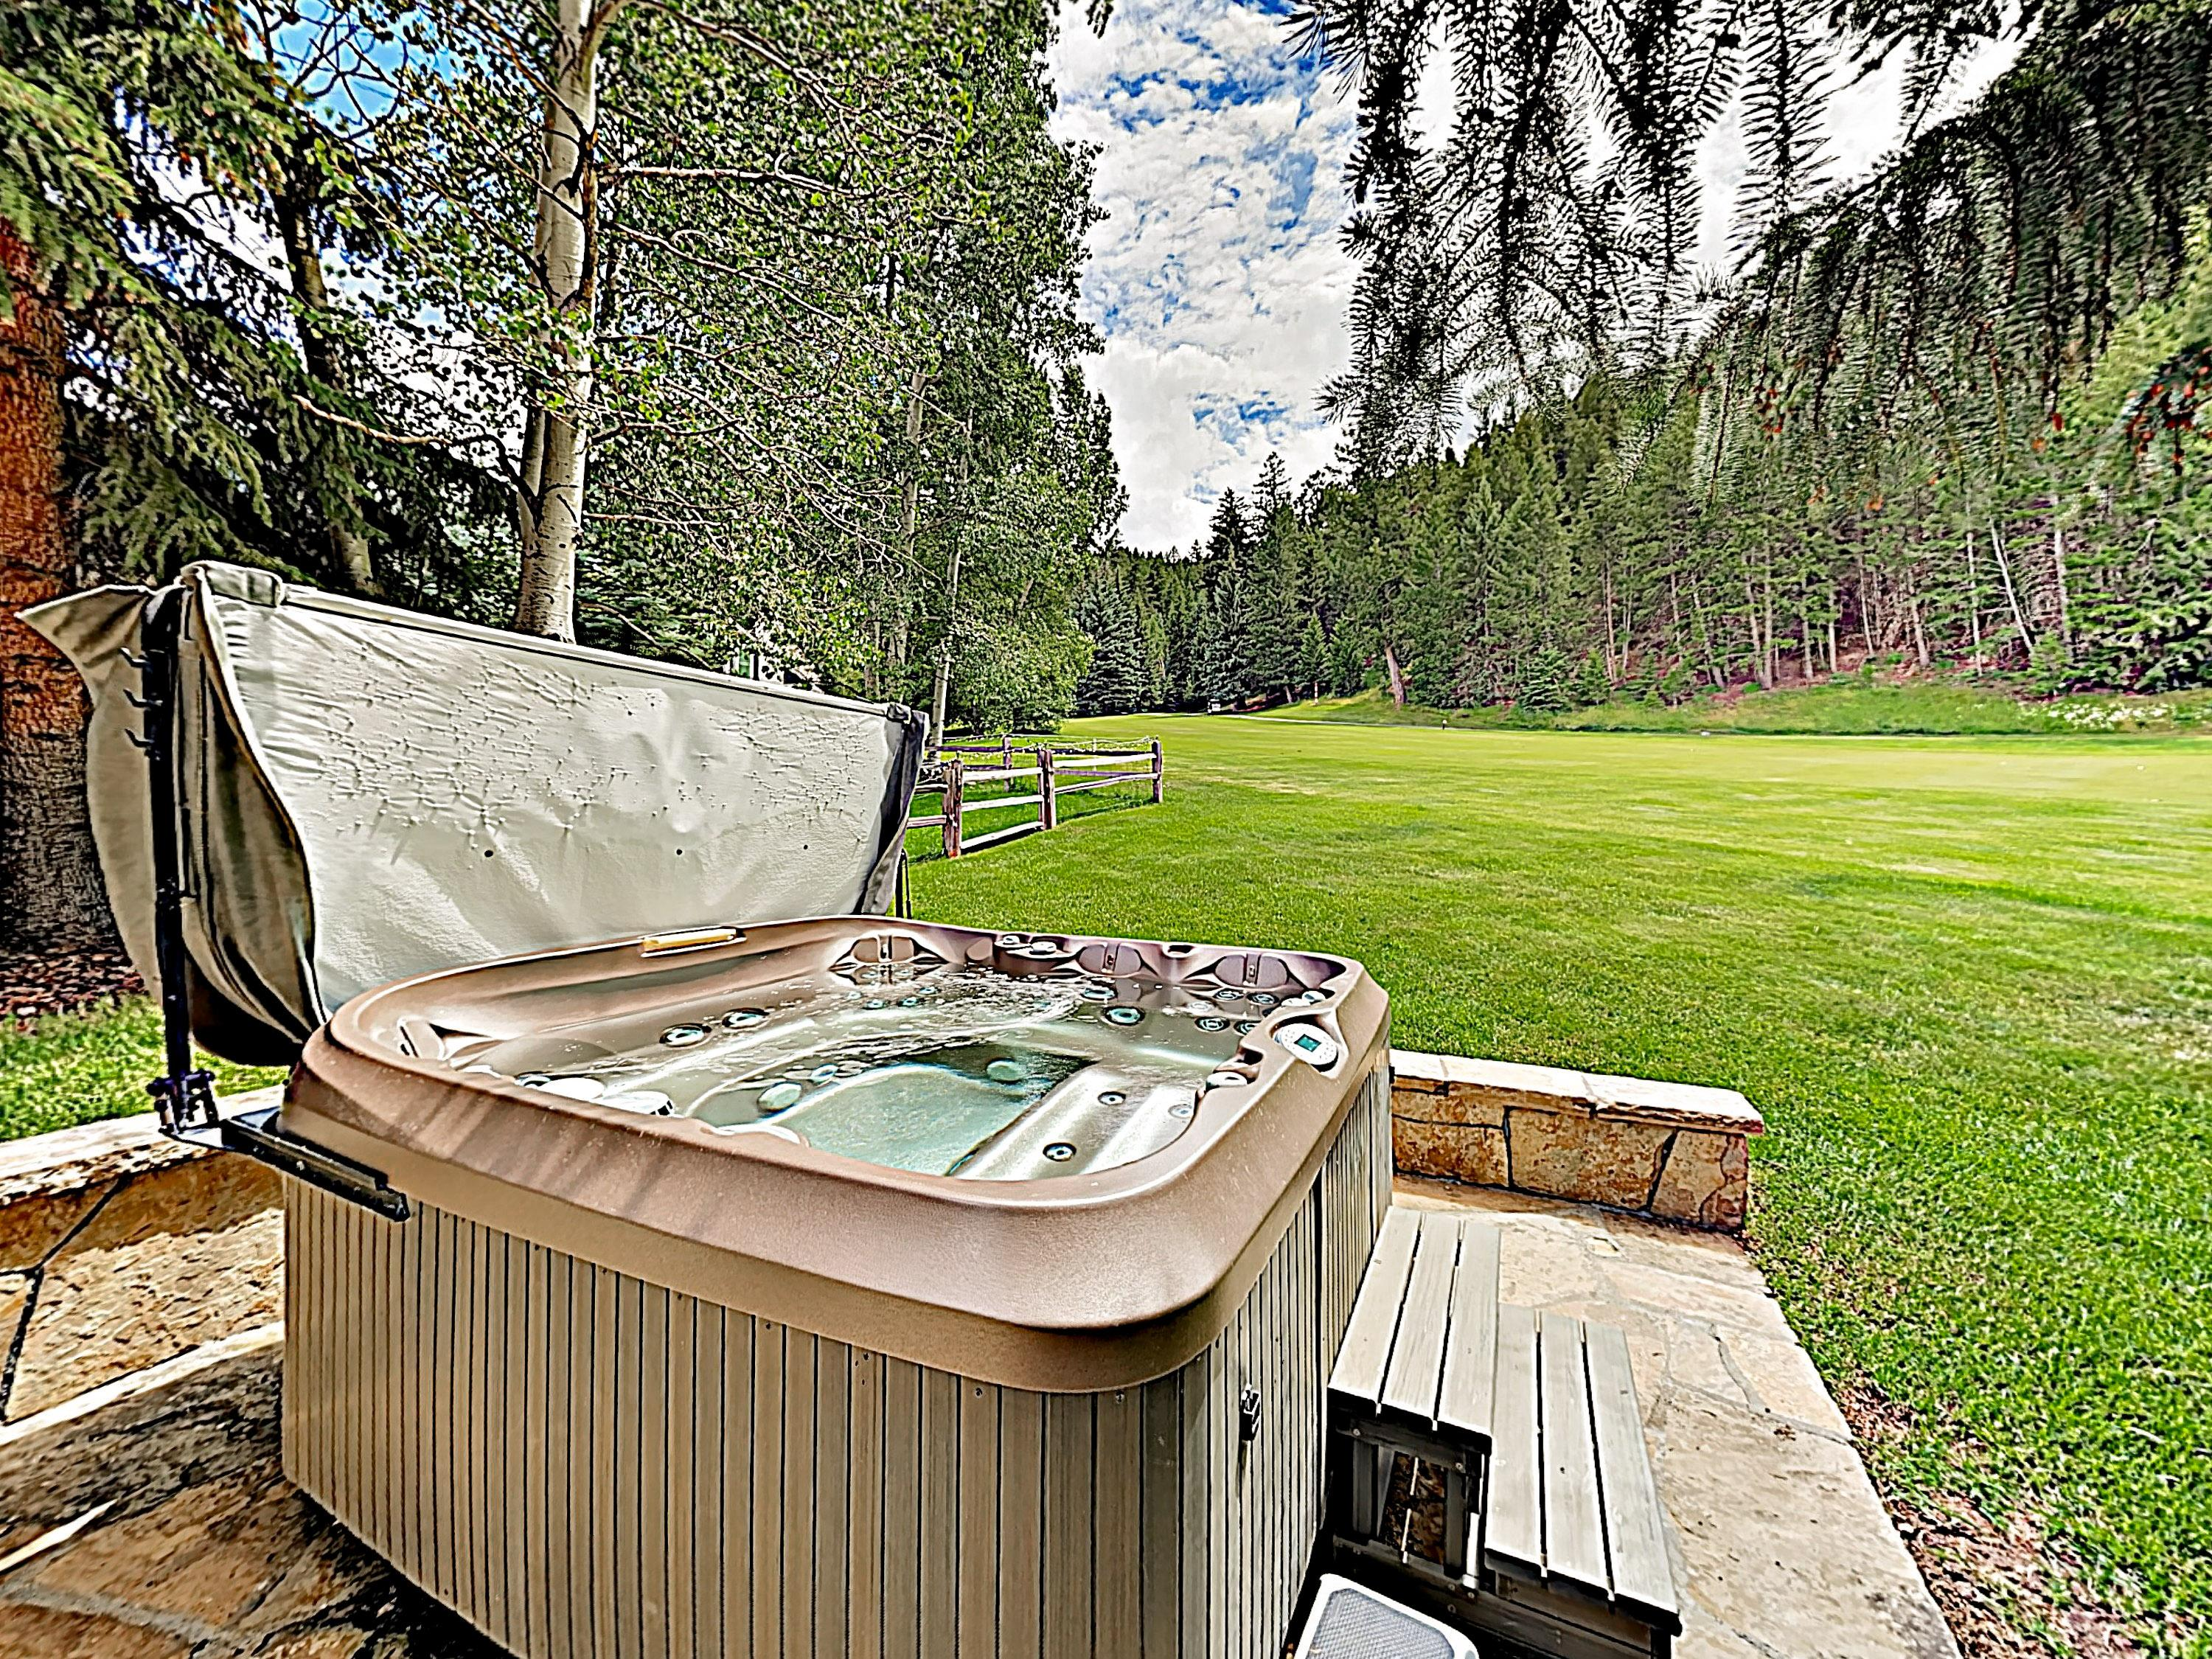 Soak in your private hot tub after a day of alpine adventures.